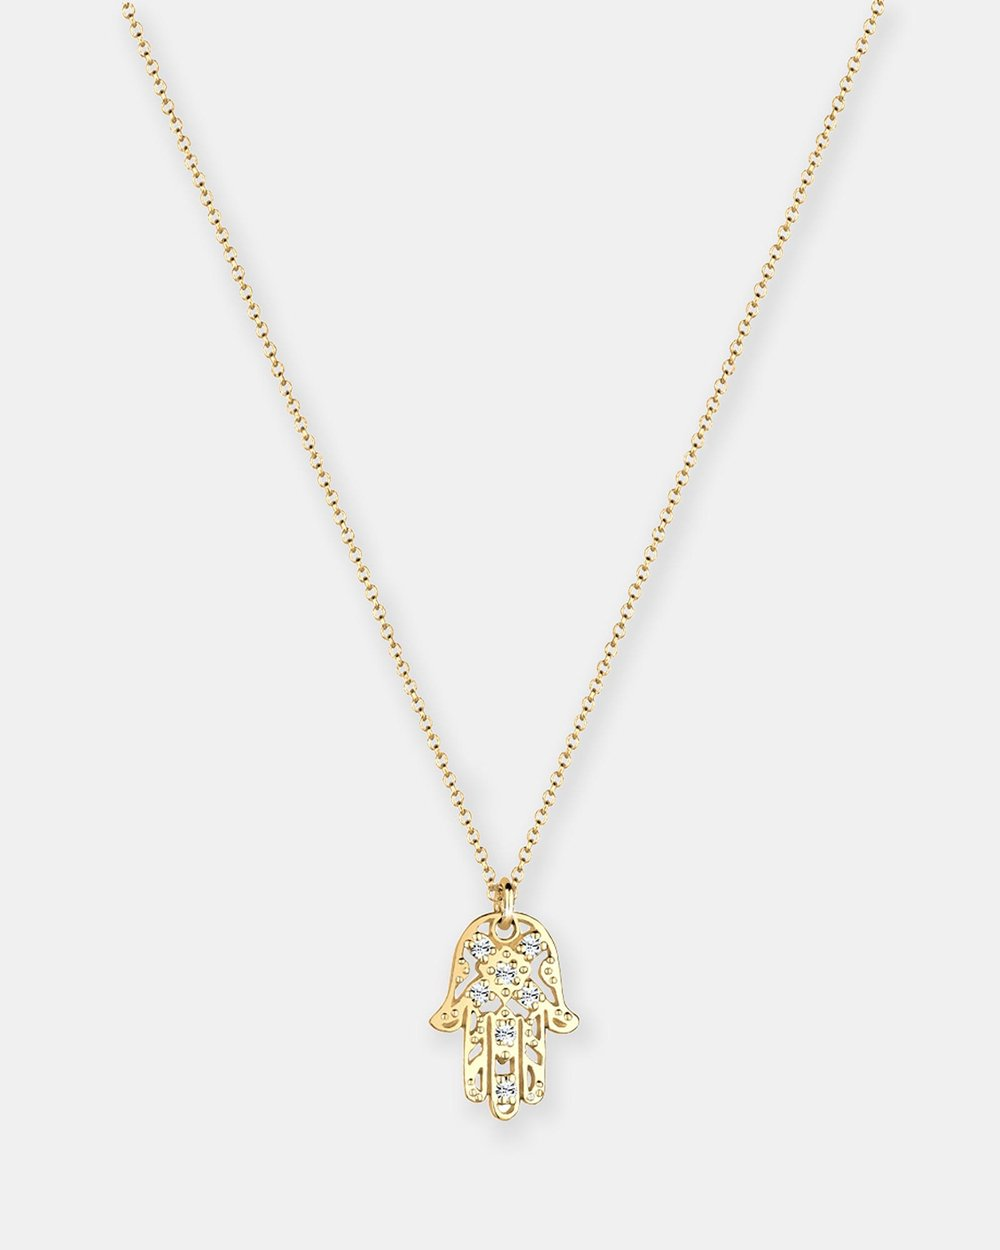 8755c1417520a Necklace Hamsa Hand Swarovski® Crystals 925 Sterling Silver Gold ...